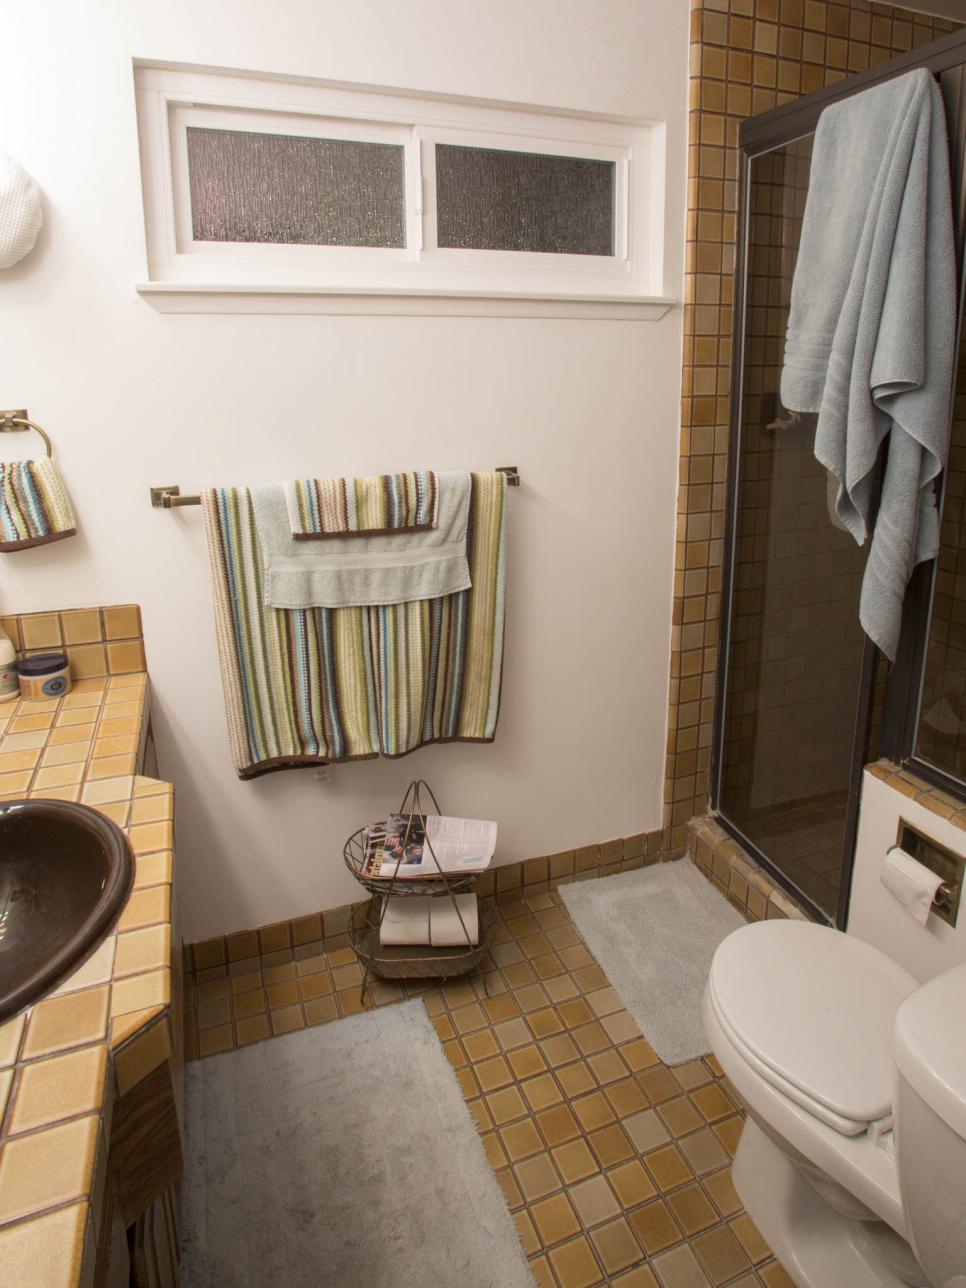 Images Of Remodeled Bathrooms 20 Small Bathroom Before And Afters  Hgtv